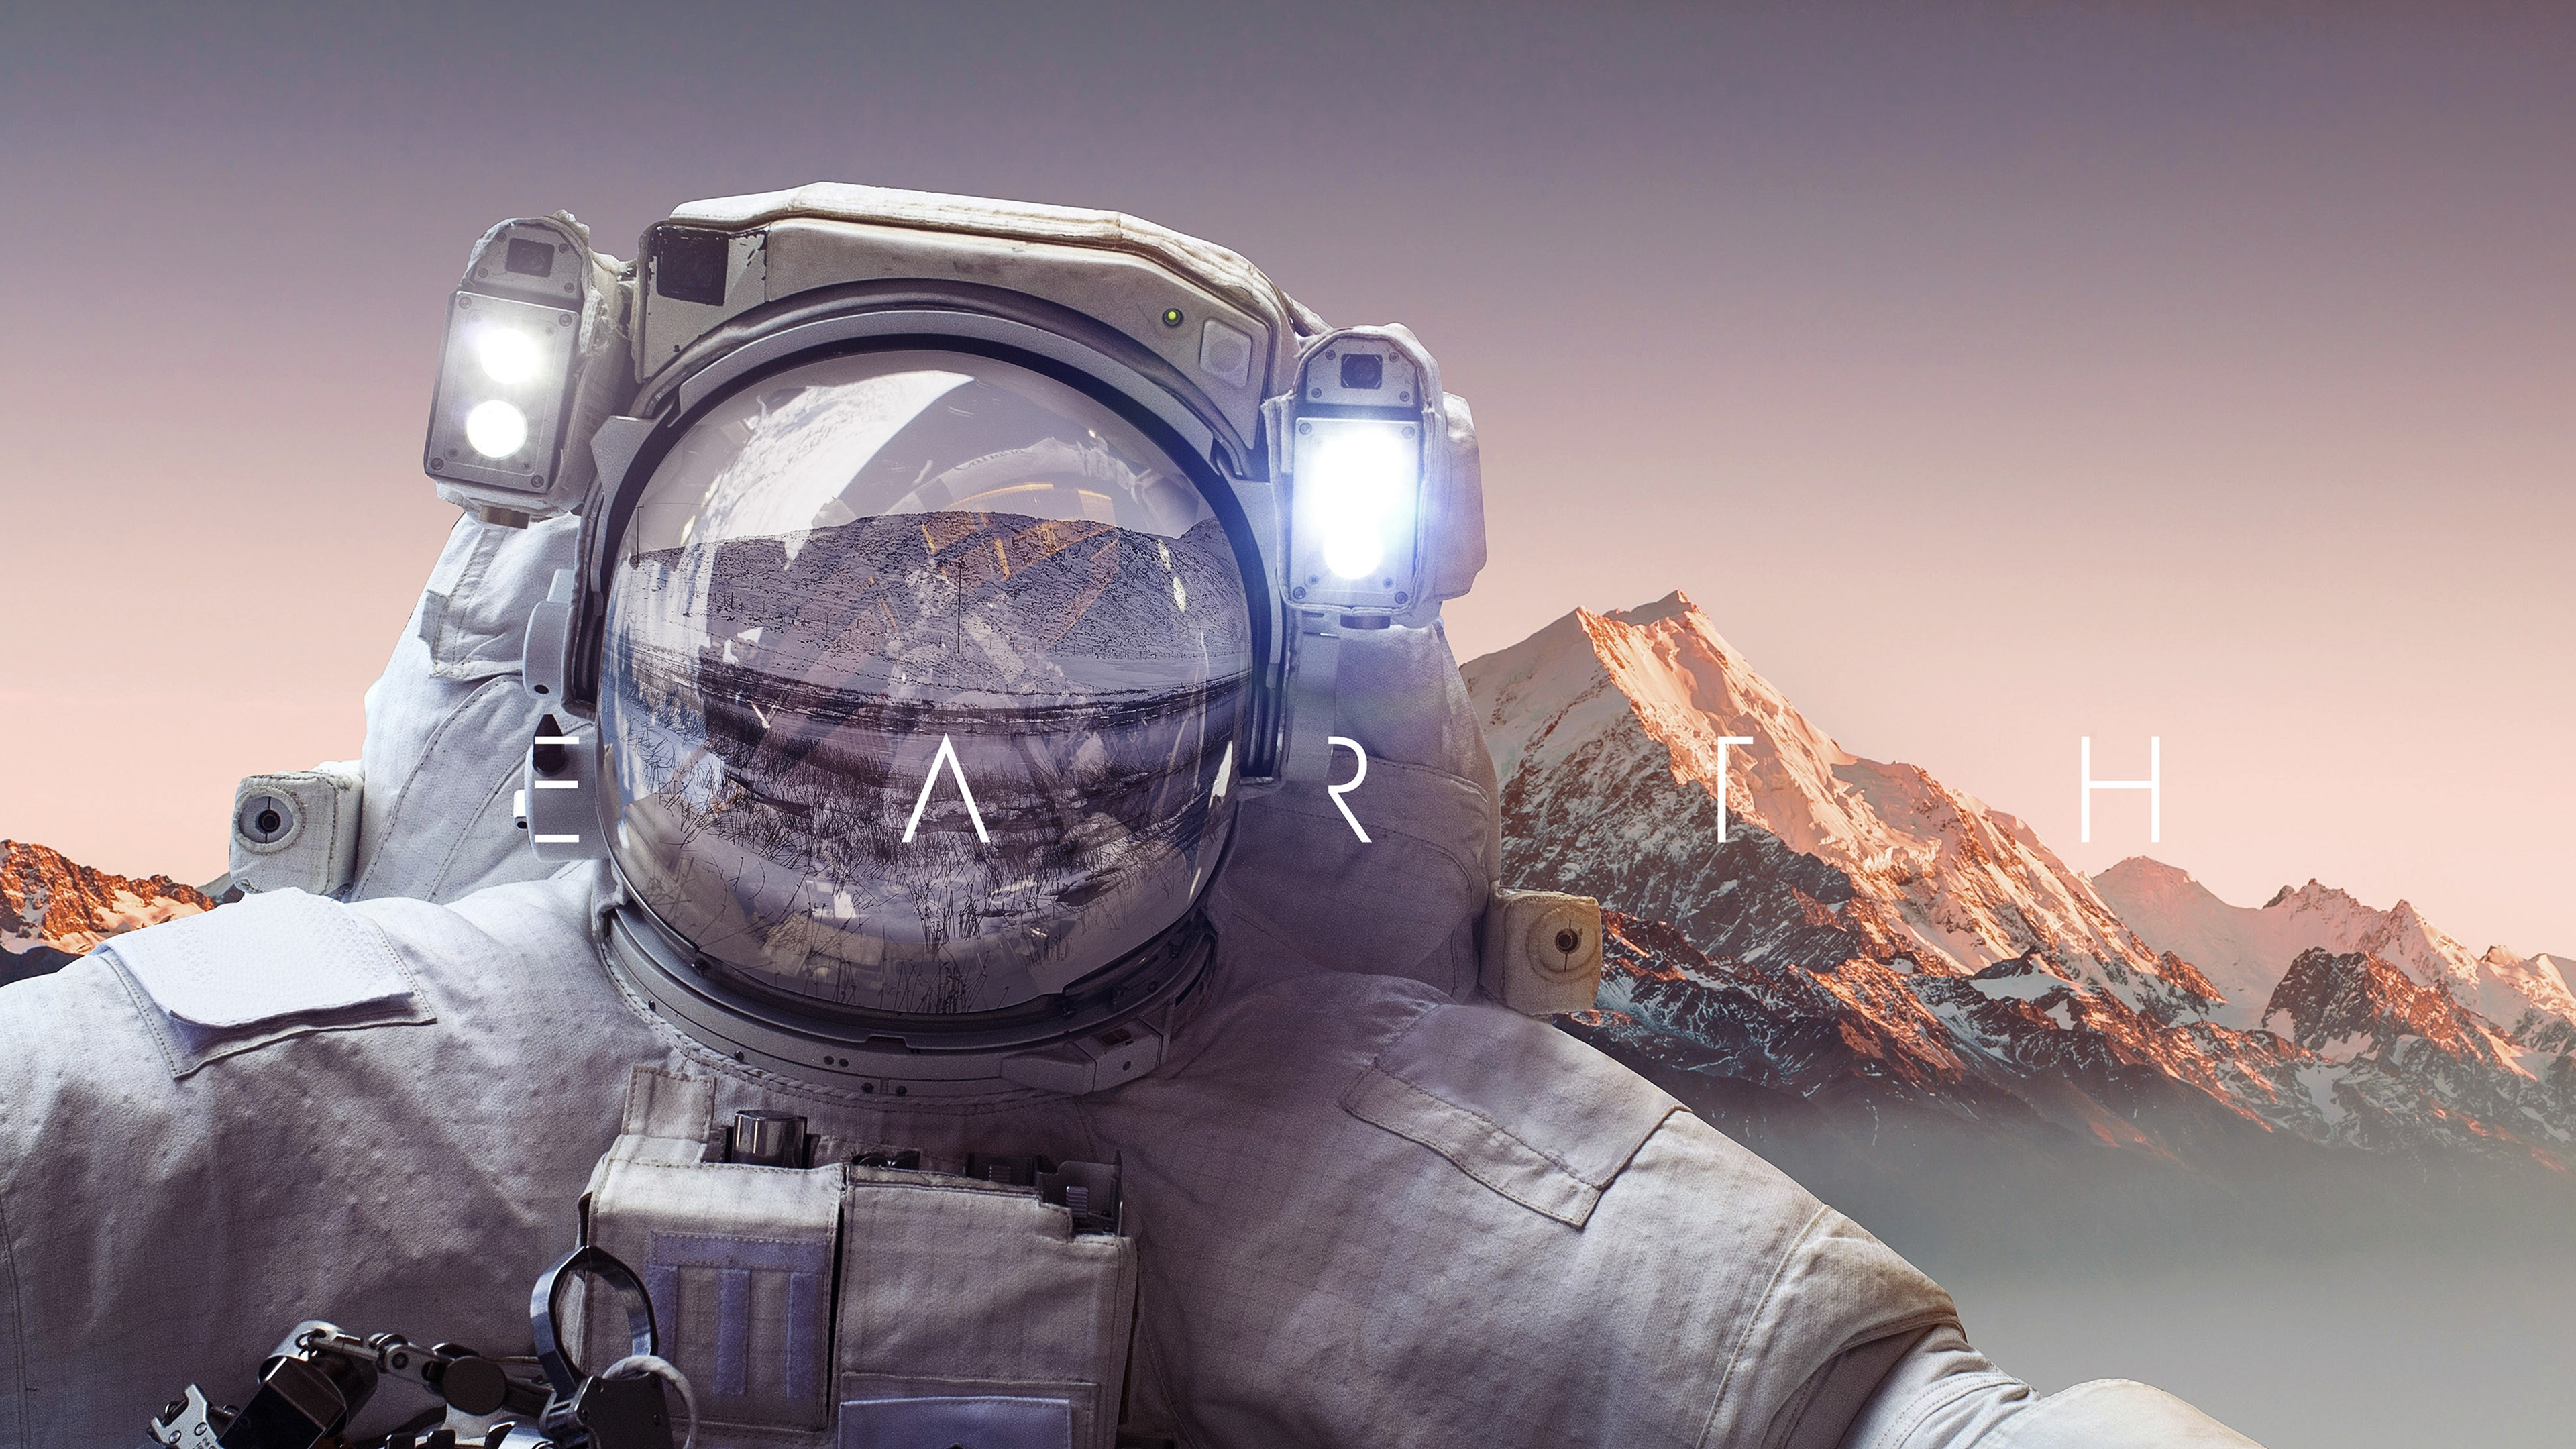 Astronaut Iphone Wallpaper Astronaut Earth 4k Wallpapers Hd Wallpapers Id 22922